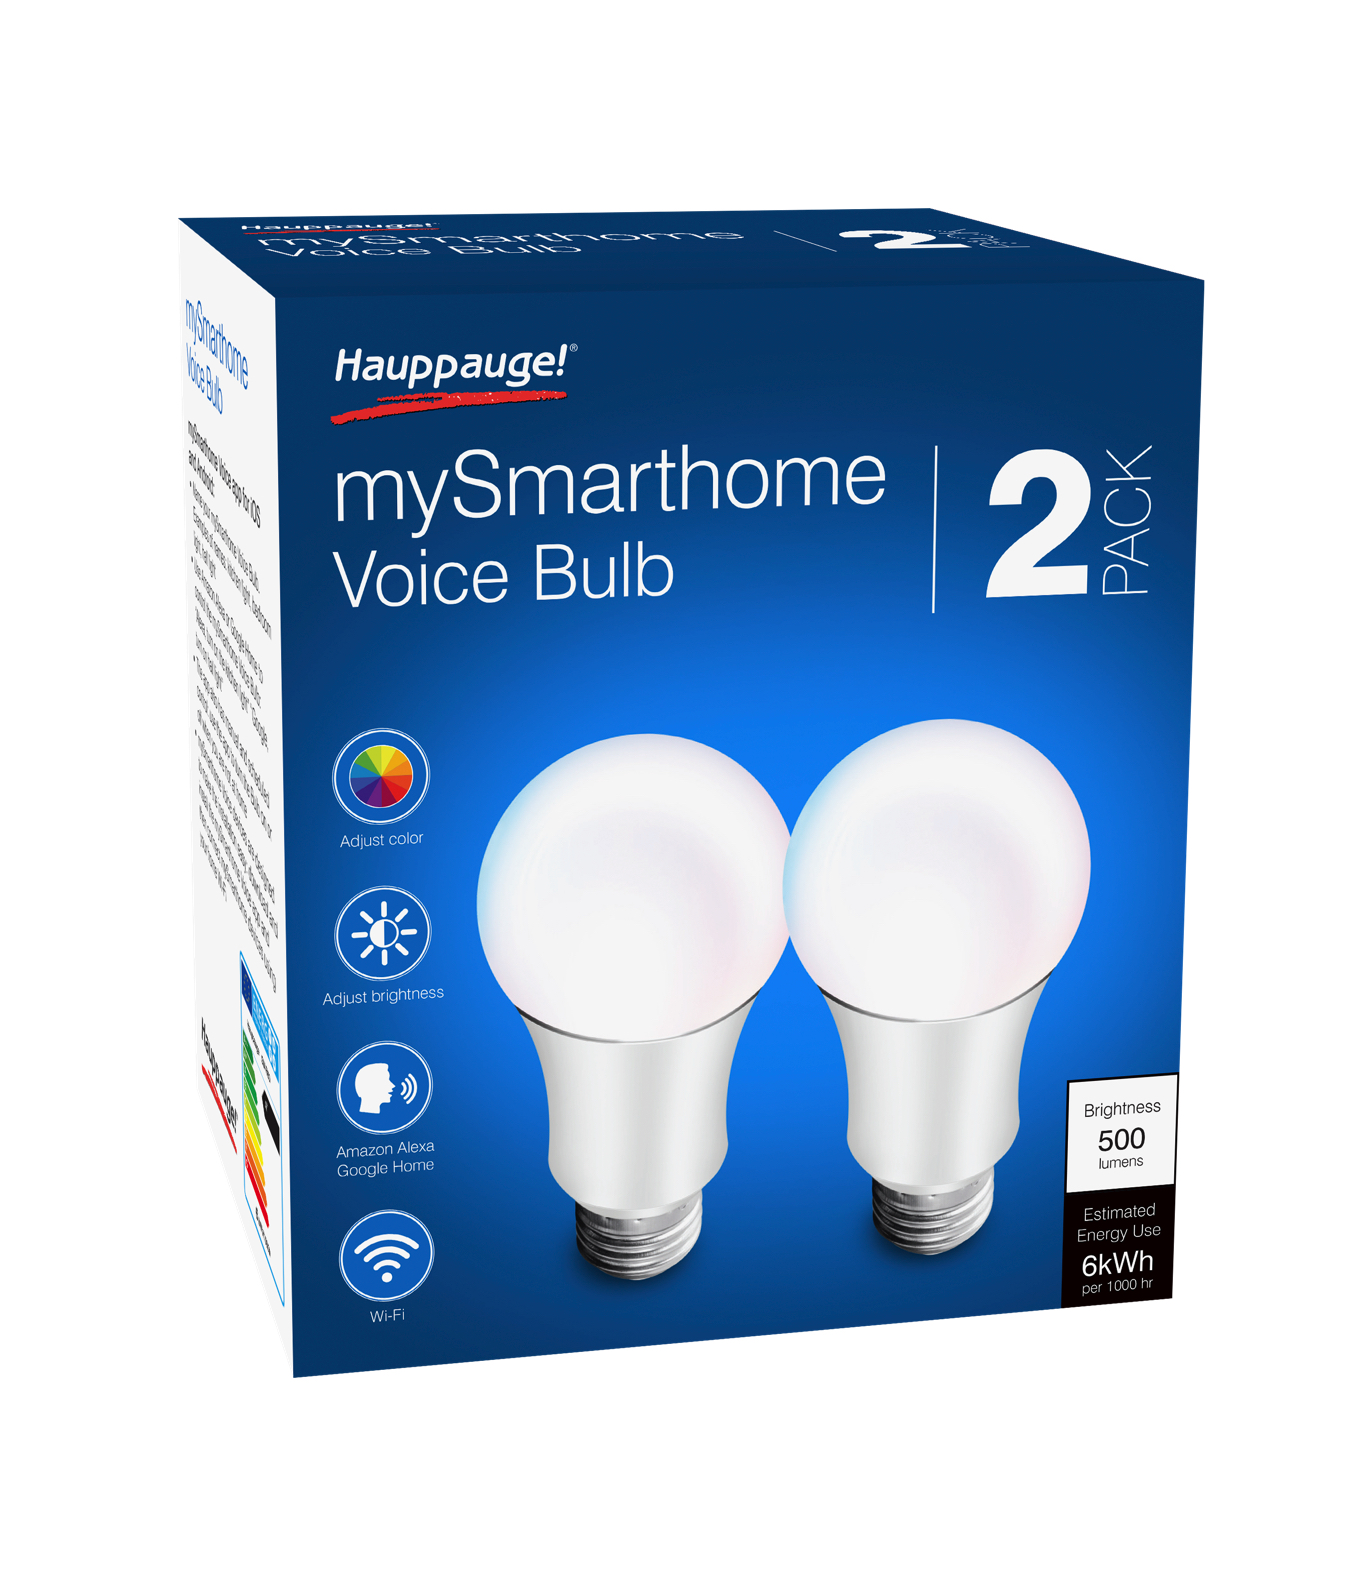 HAUPPAUGE MYSMARTHOME VOICE LED COLOUR BULB 2-PACK